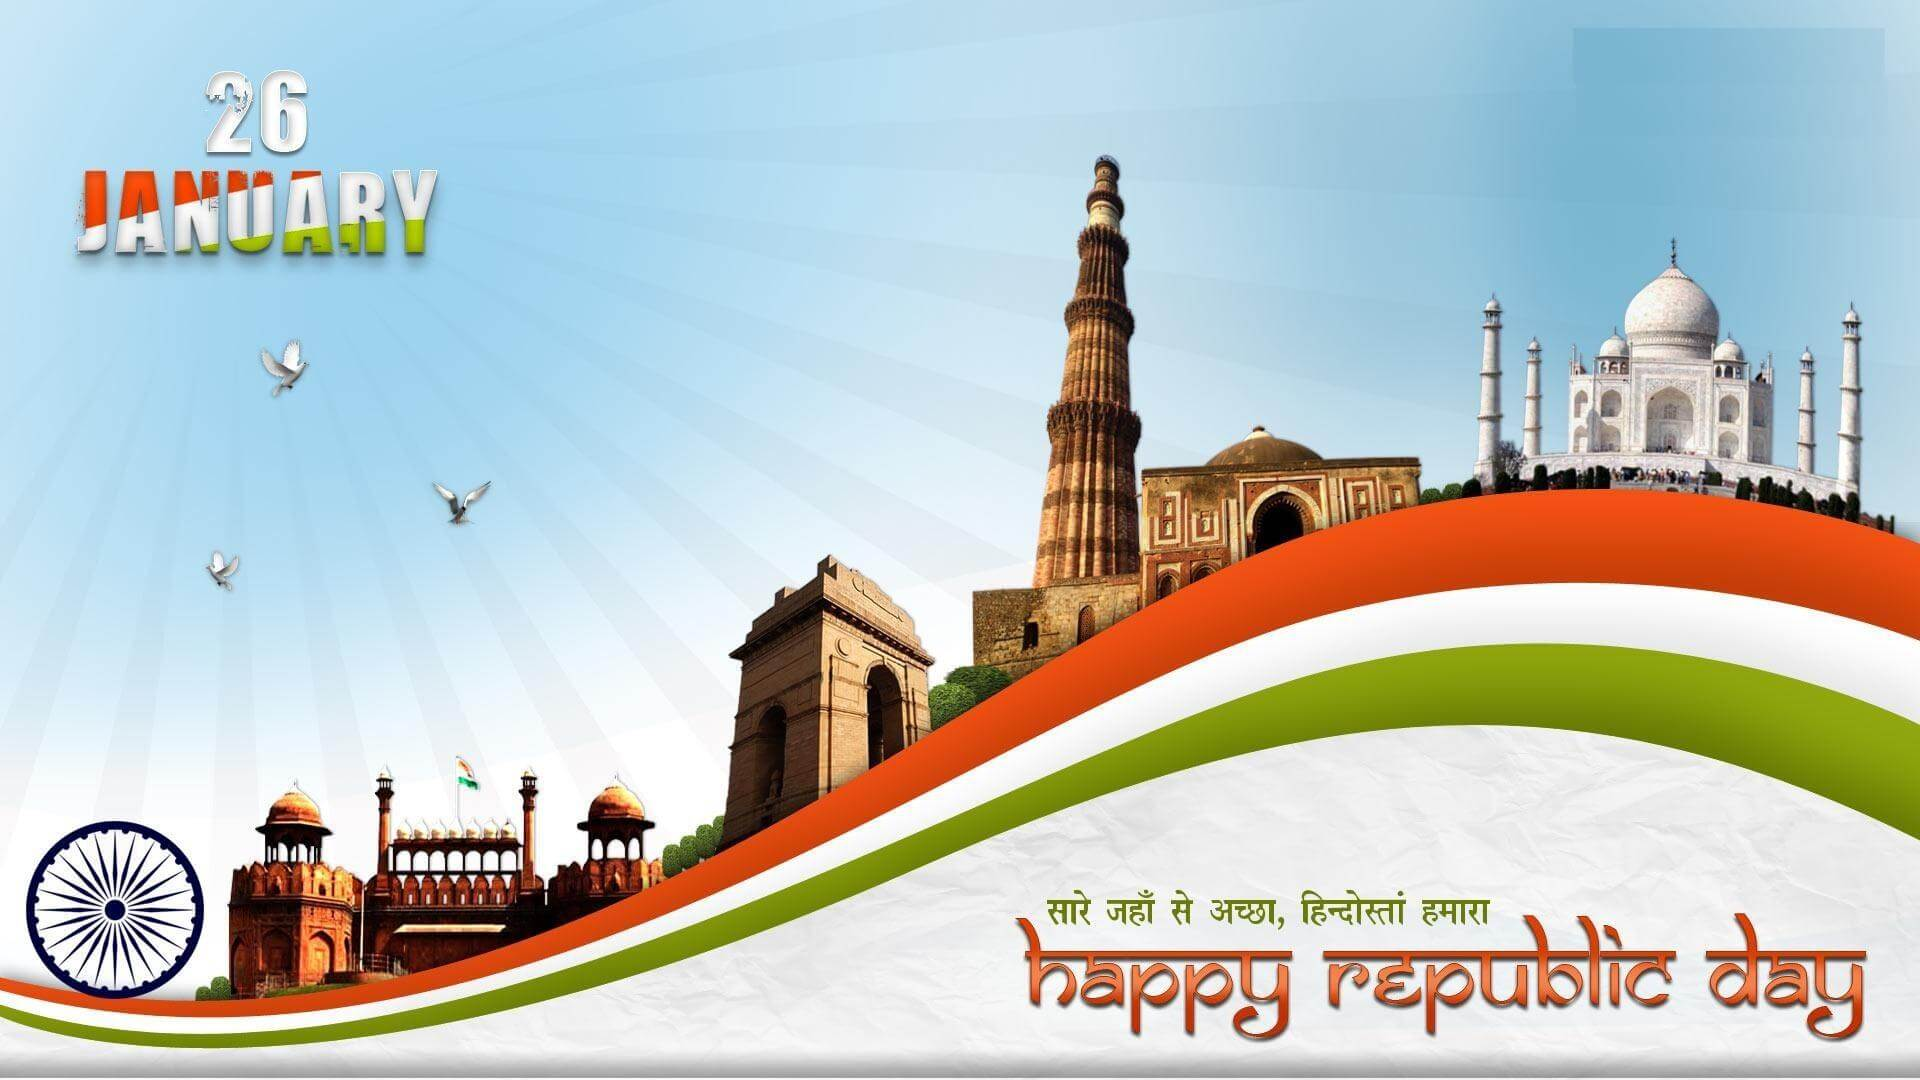 Wallpapers of Happy Republic Day